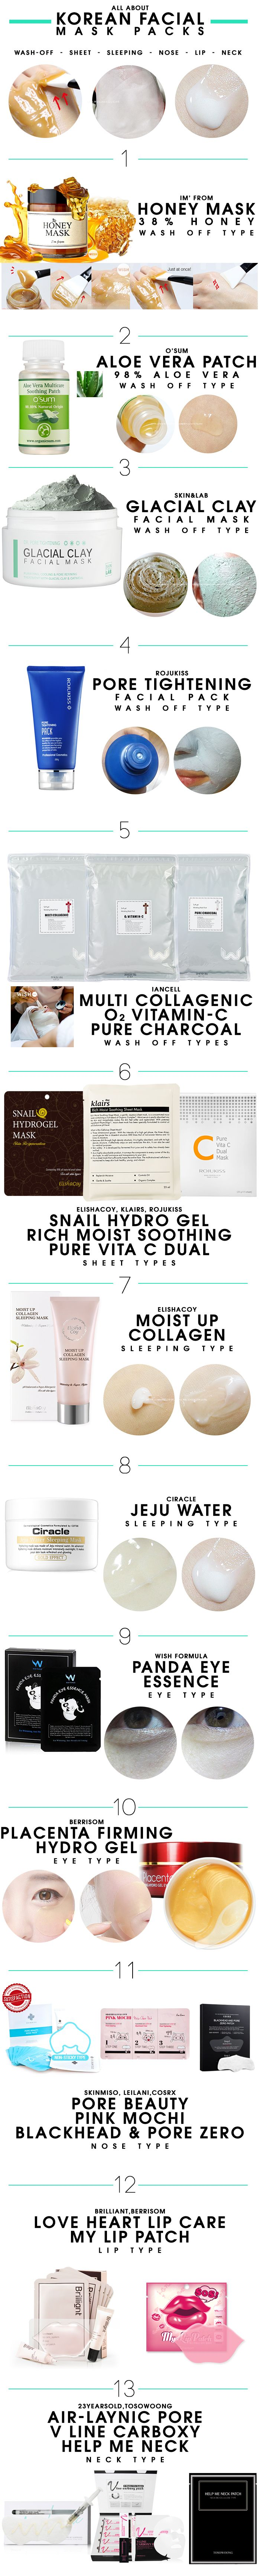 All about Korean facial mask packs from wash-off to sleeping packs and more! Choose a proper one depending on the different functions and usages you want.